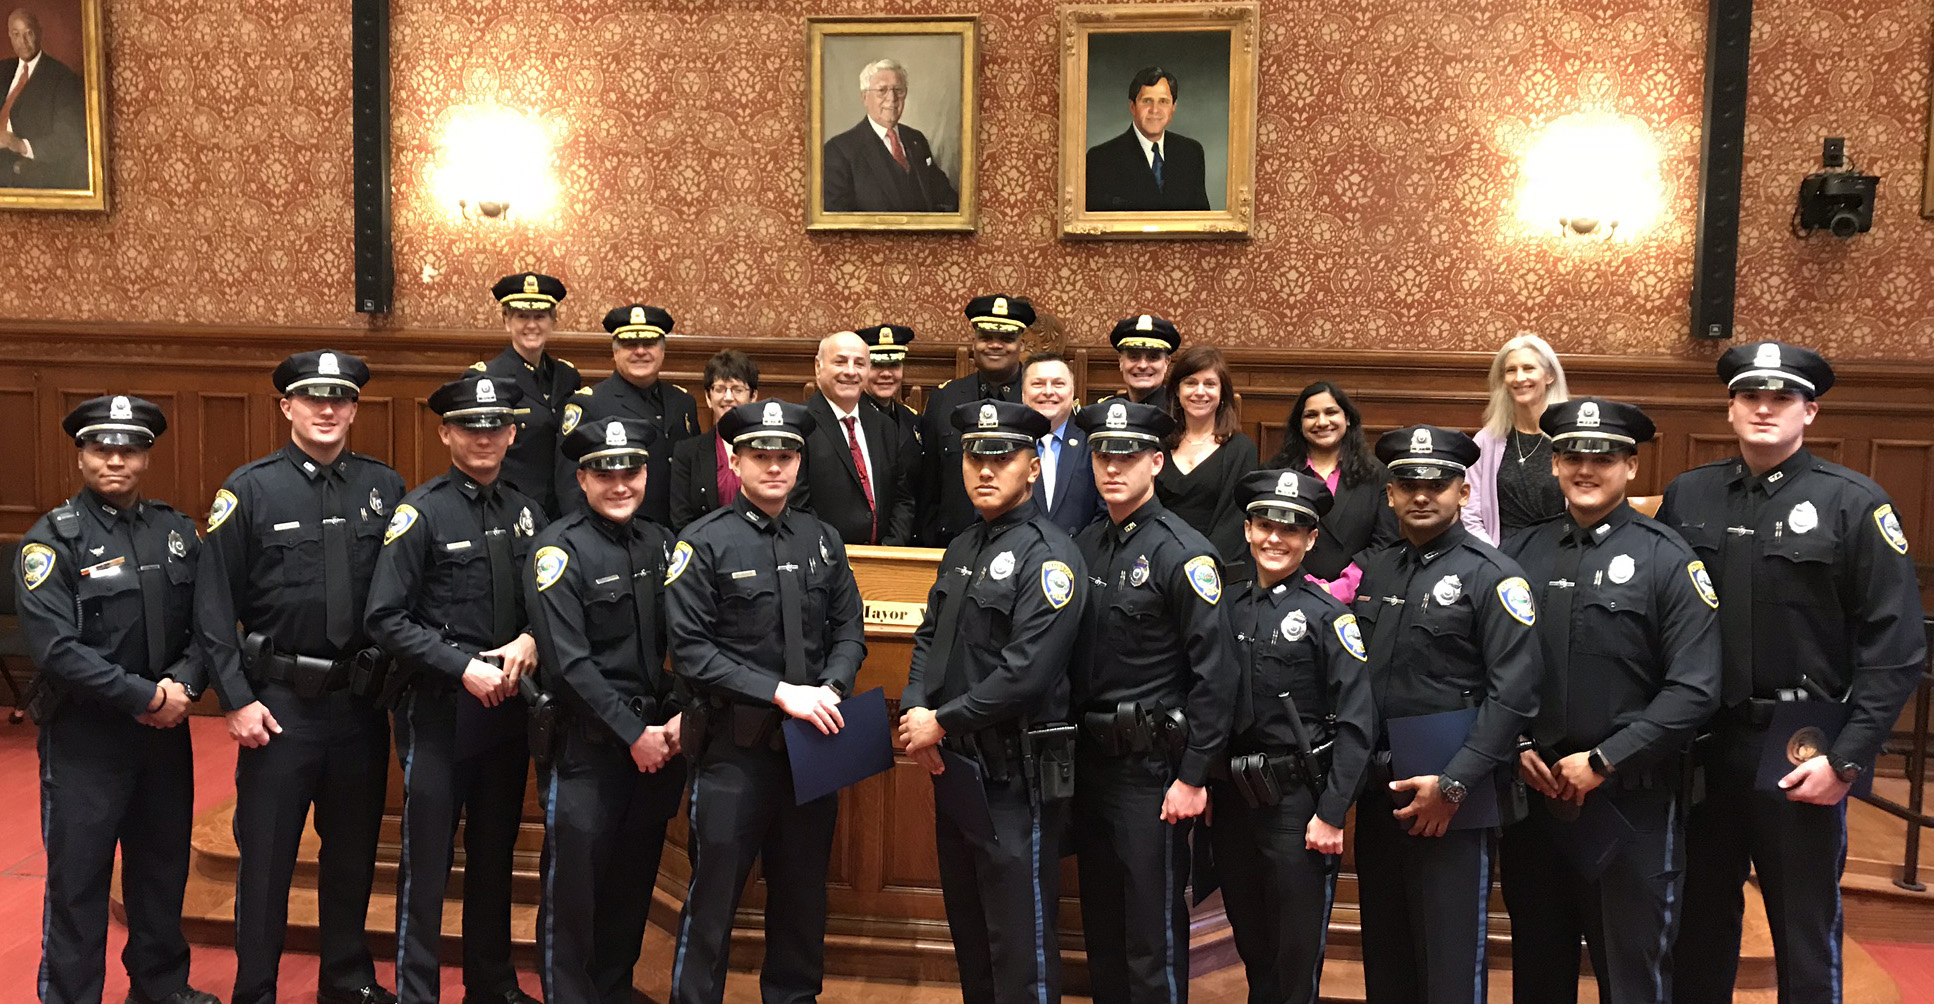 Cambridge Police Graduating Class